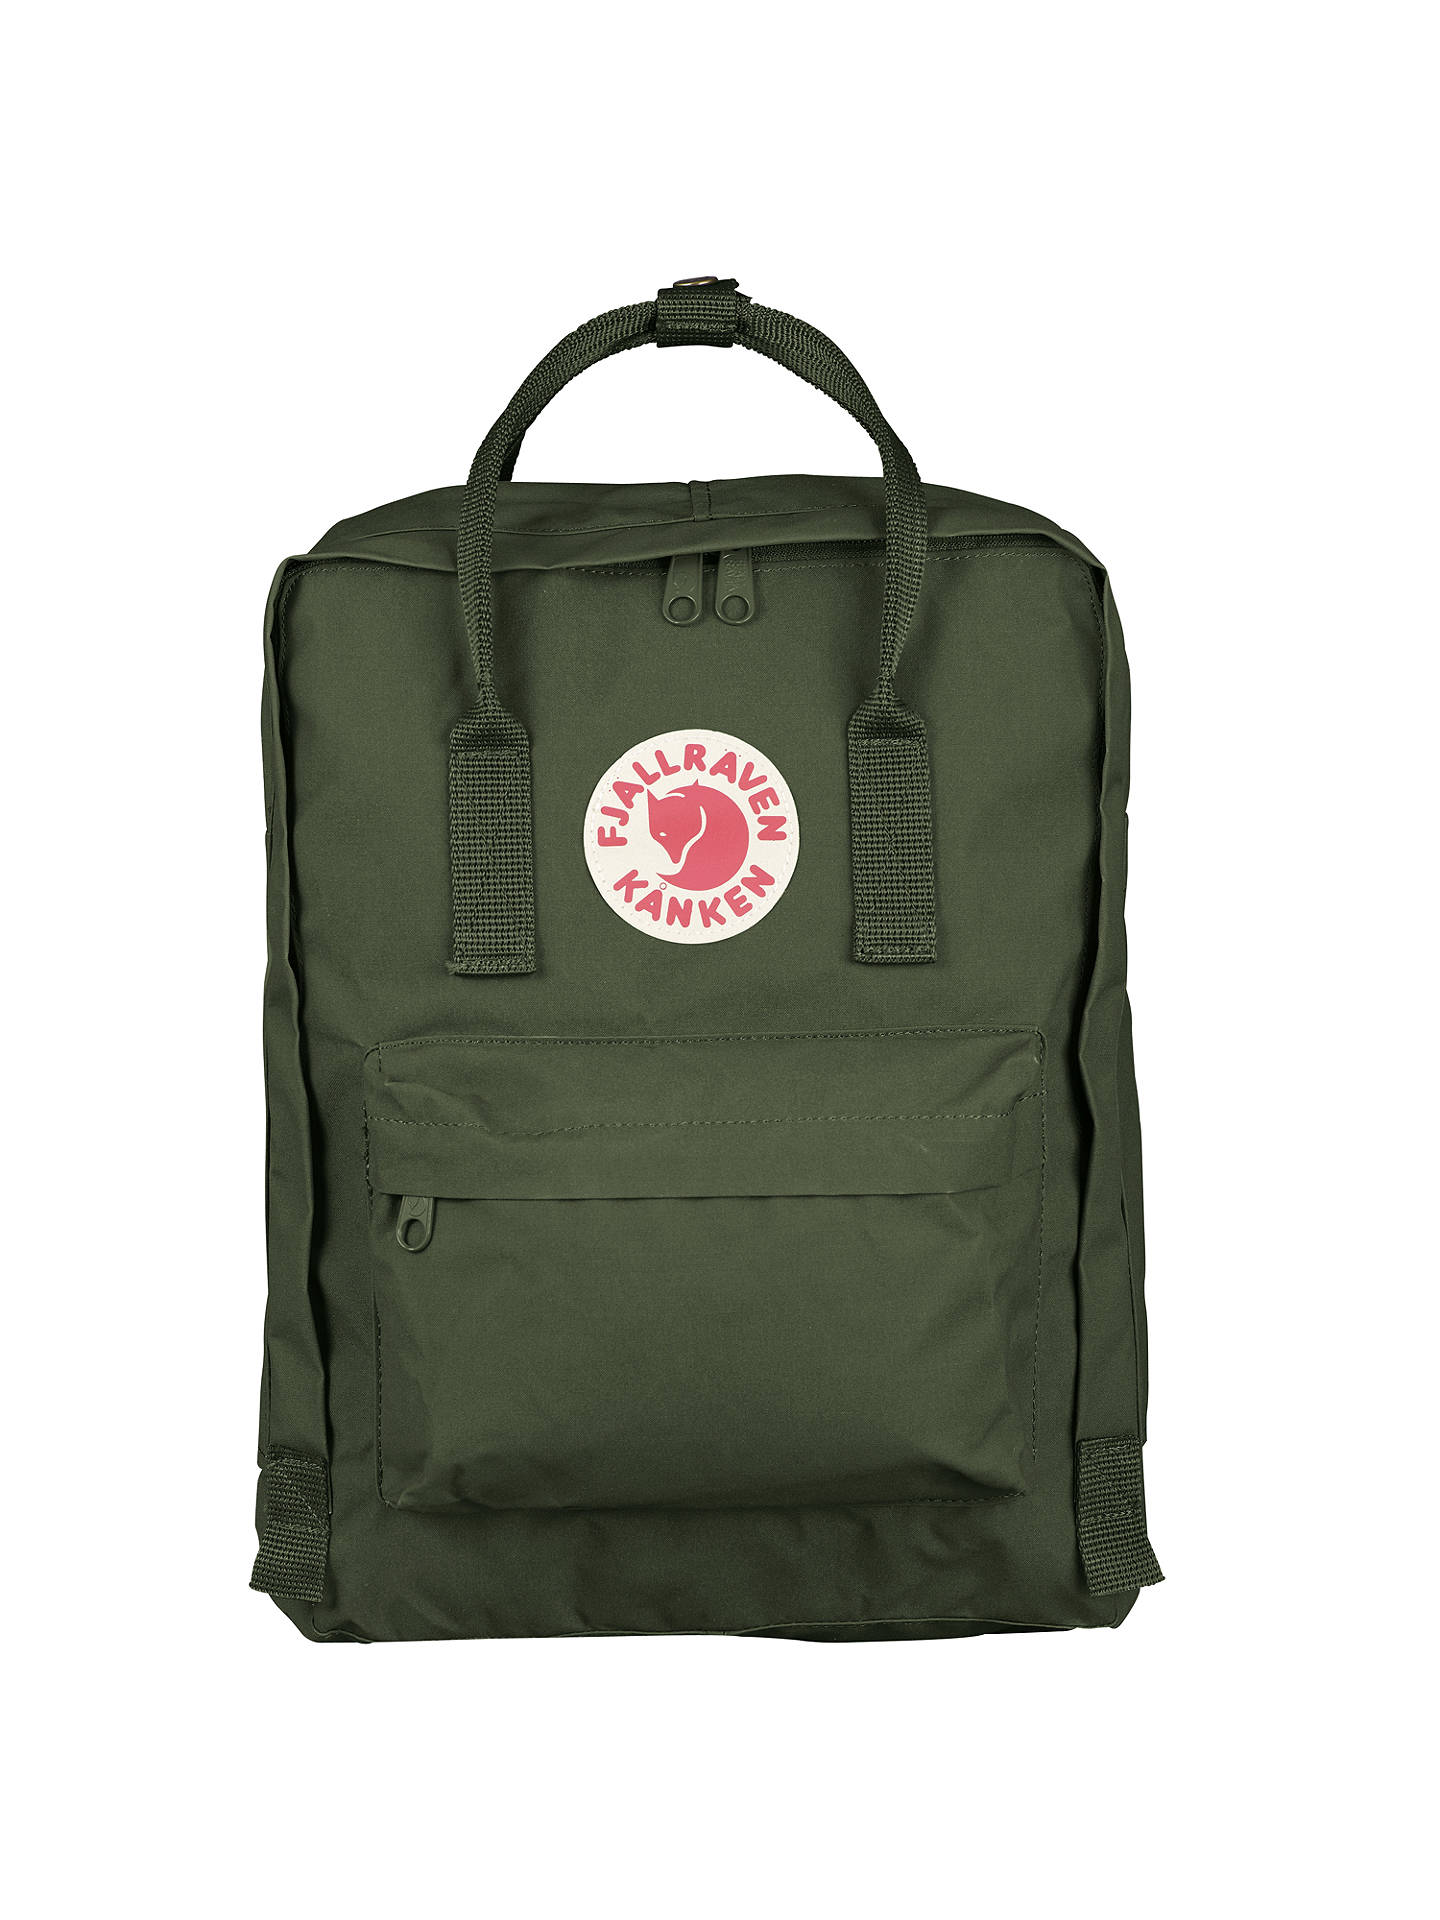 Buy Fjallraven Kanken Classic Backpack, Forest Green Online at johnlewis.com